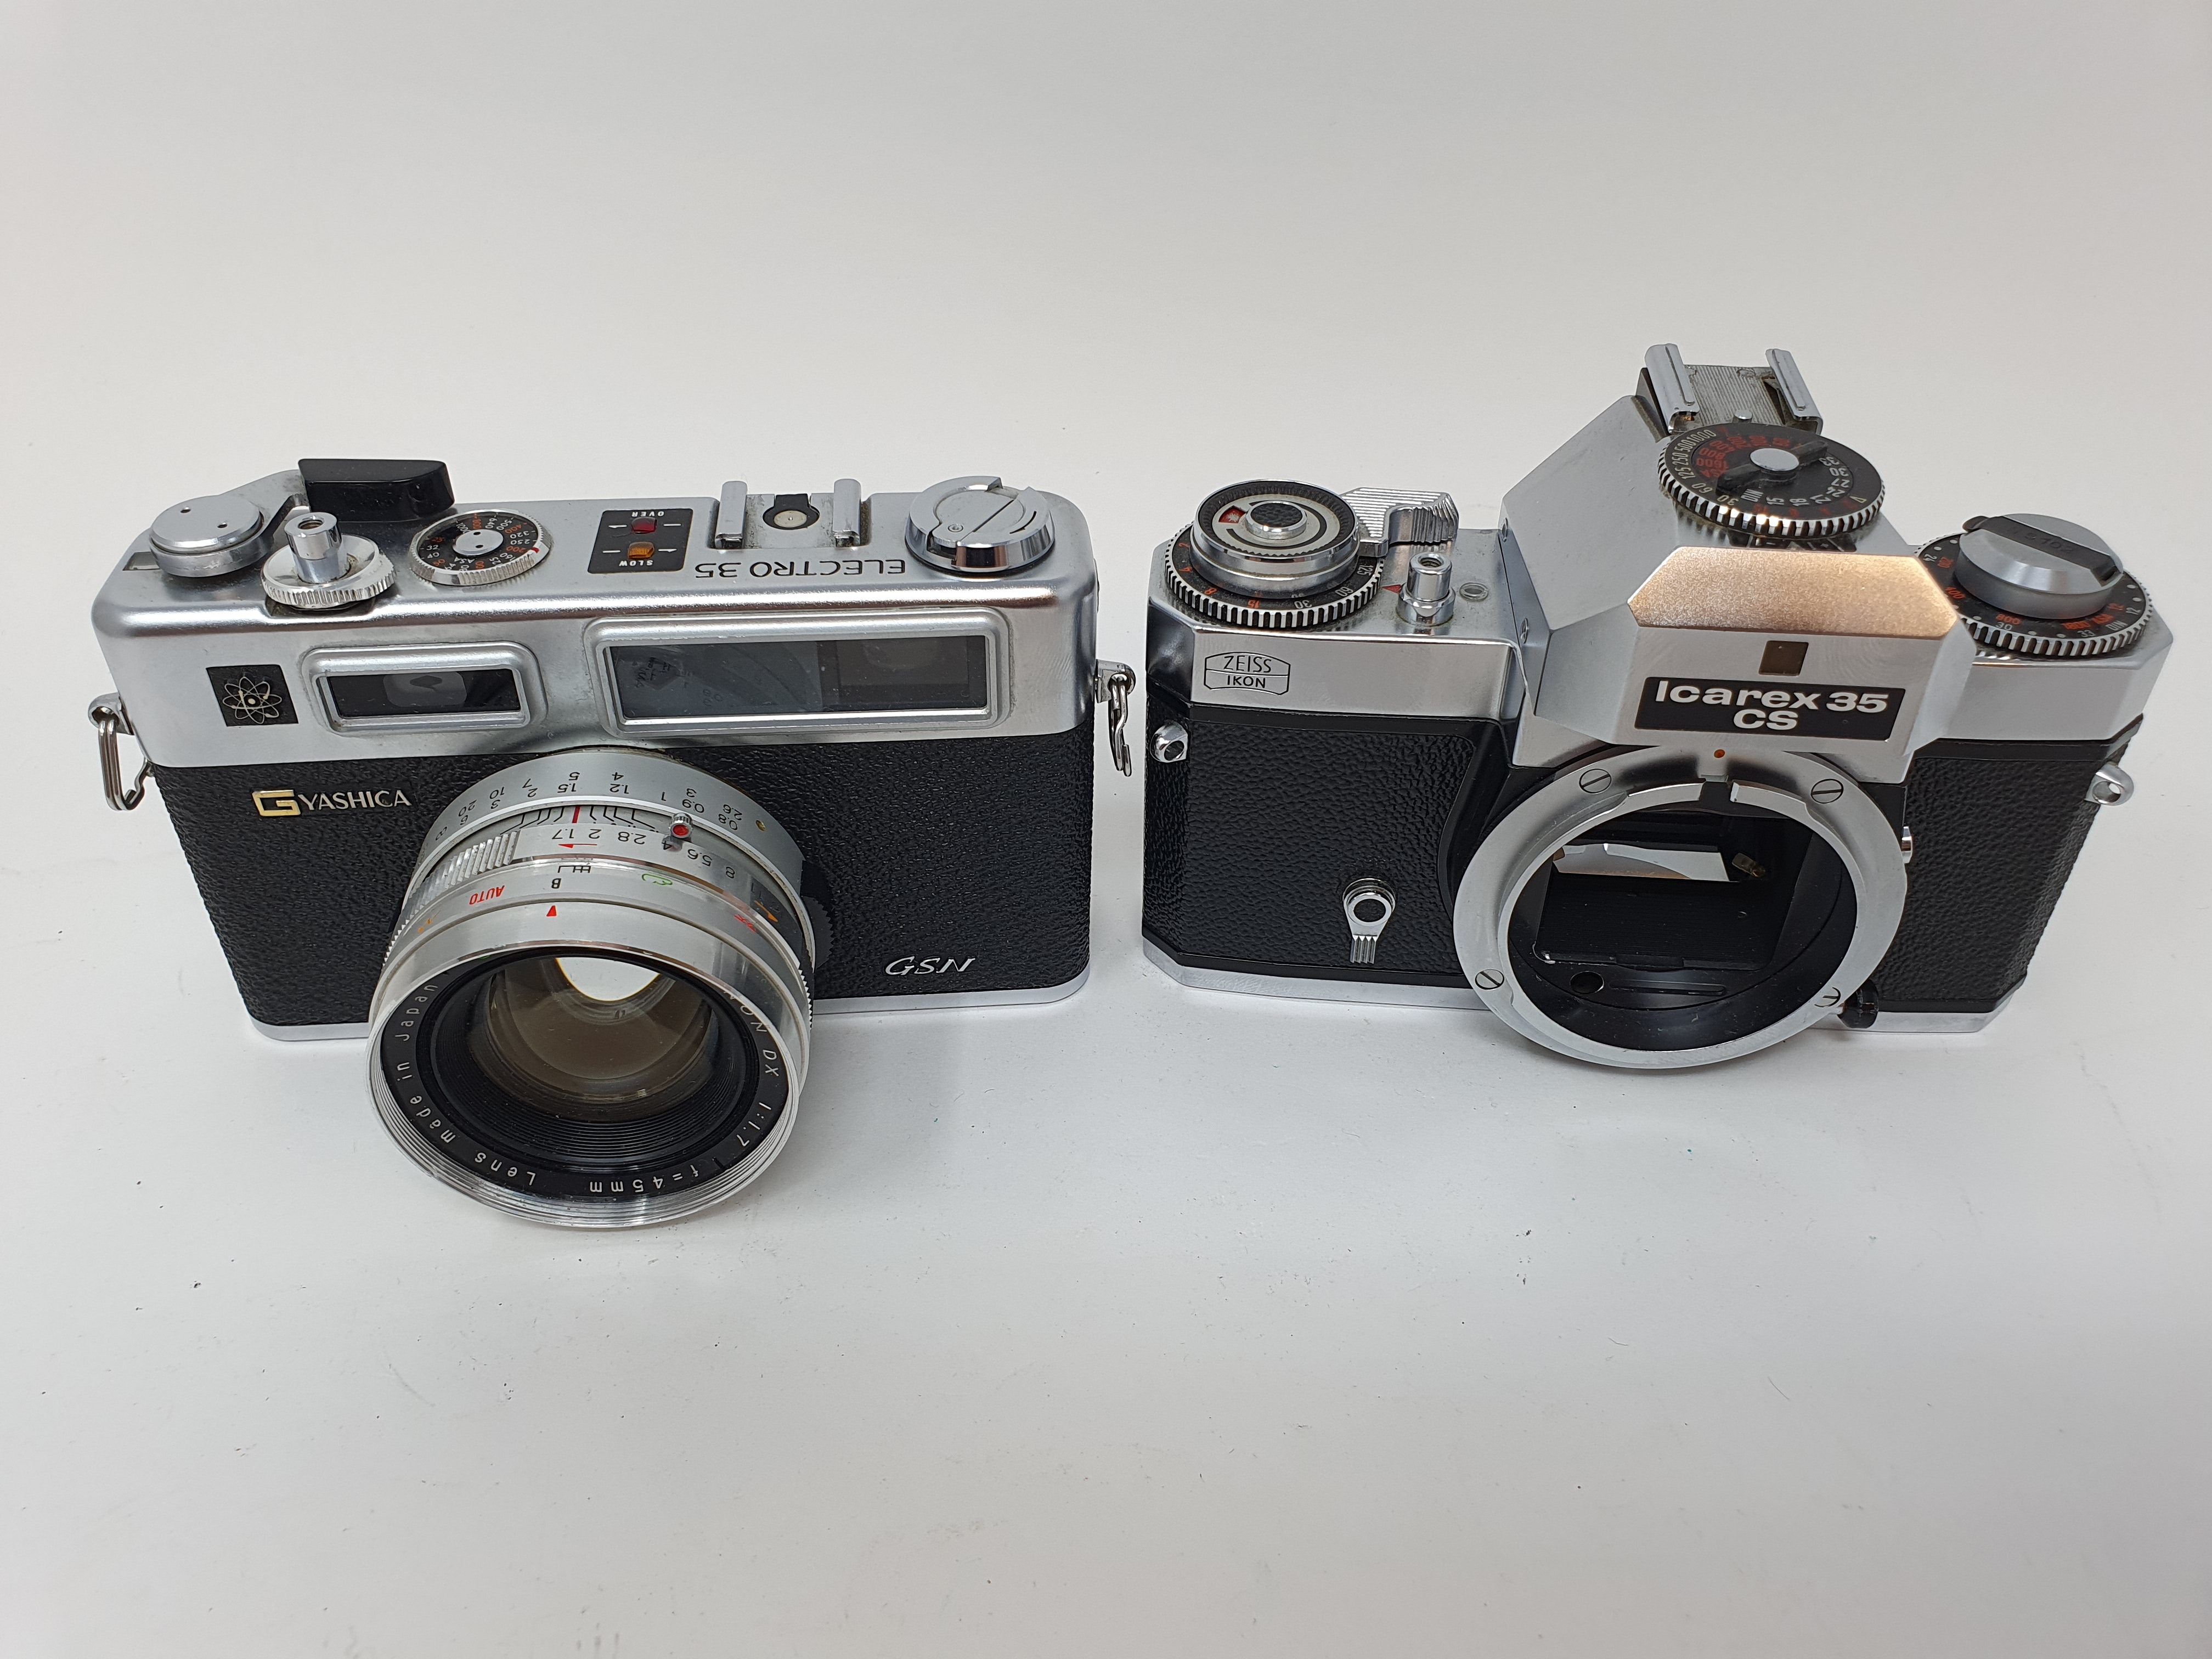 A Zeiss Ikon voigtlander camera and a Yashica GSN Electro 35 camera (2) Provenance: Part of a vast - Image 2 of 3